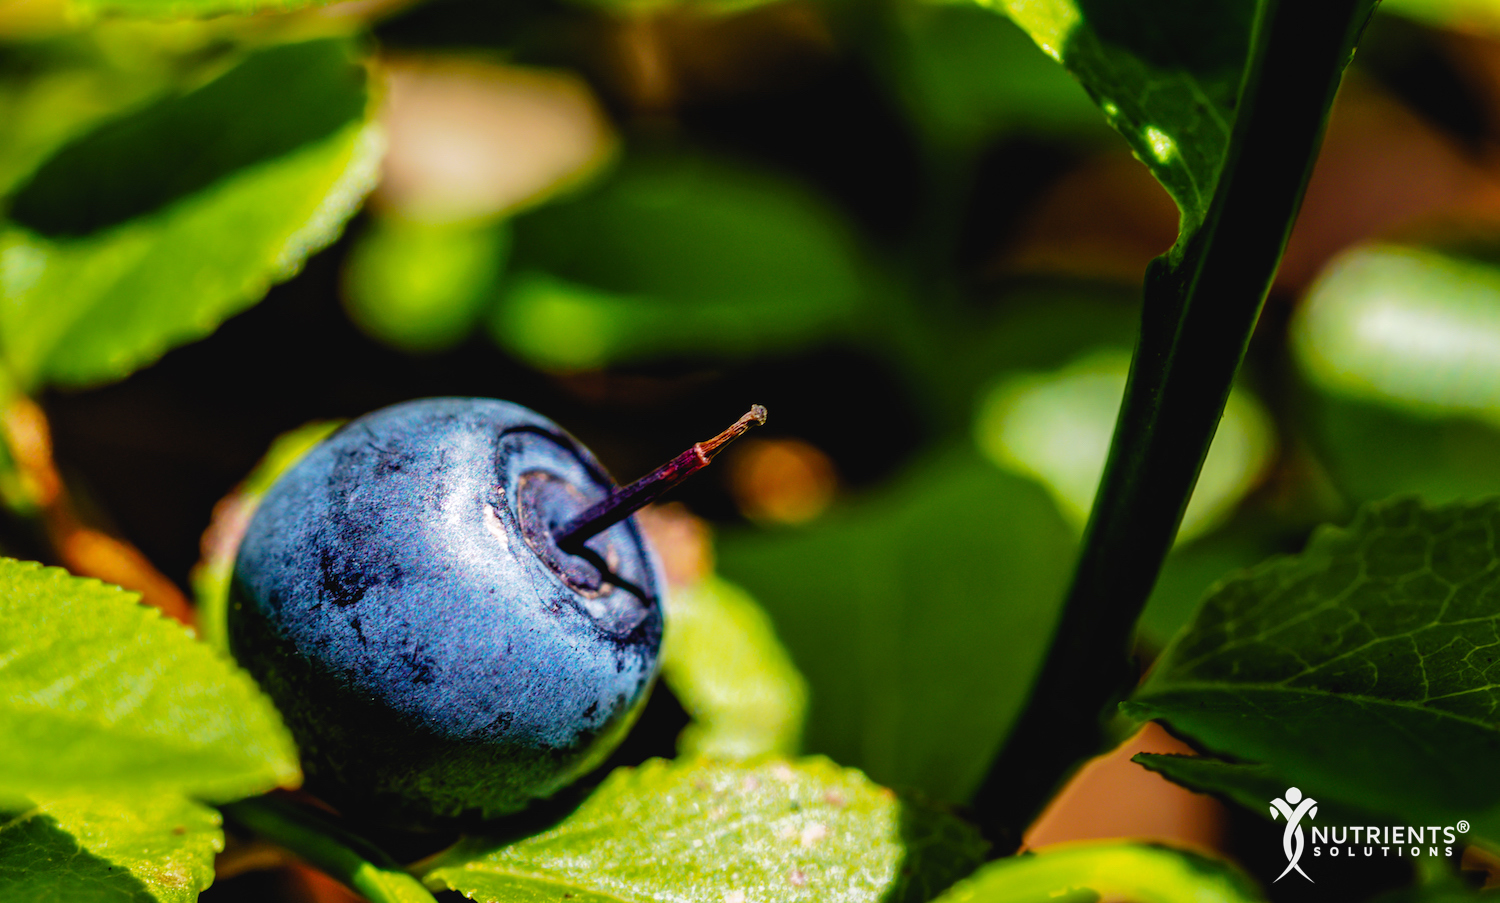 The Health-Enhancing and Disease-Fighting Properties of Bilberry